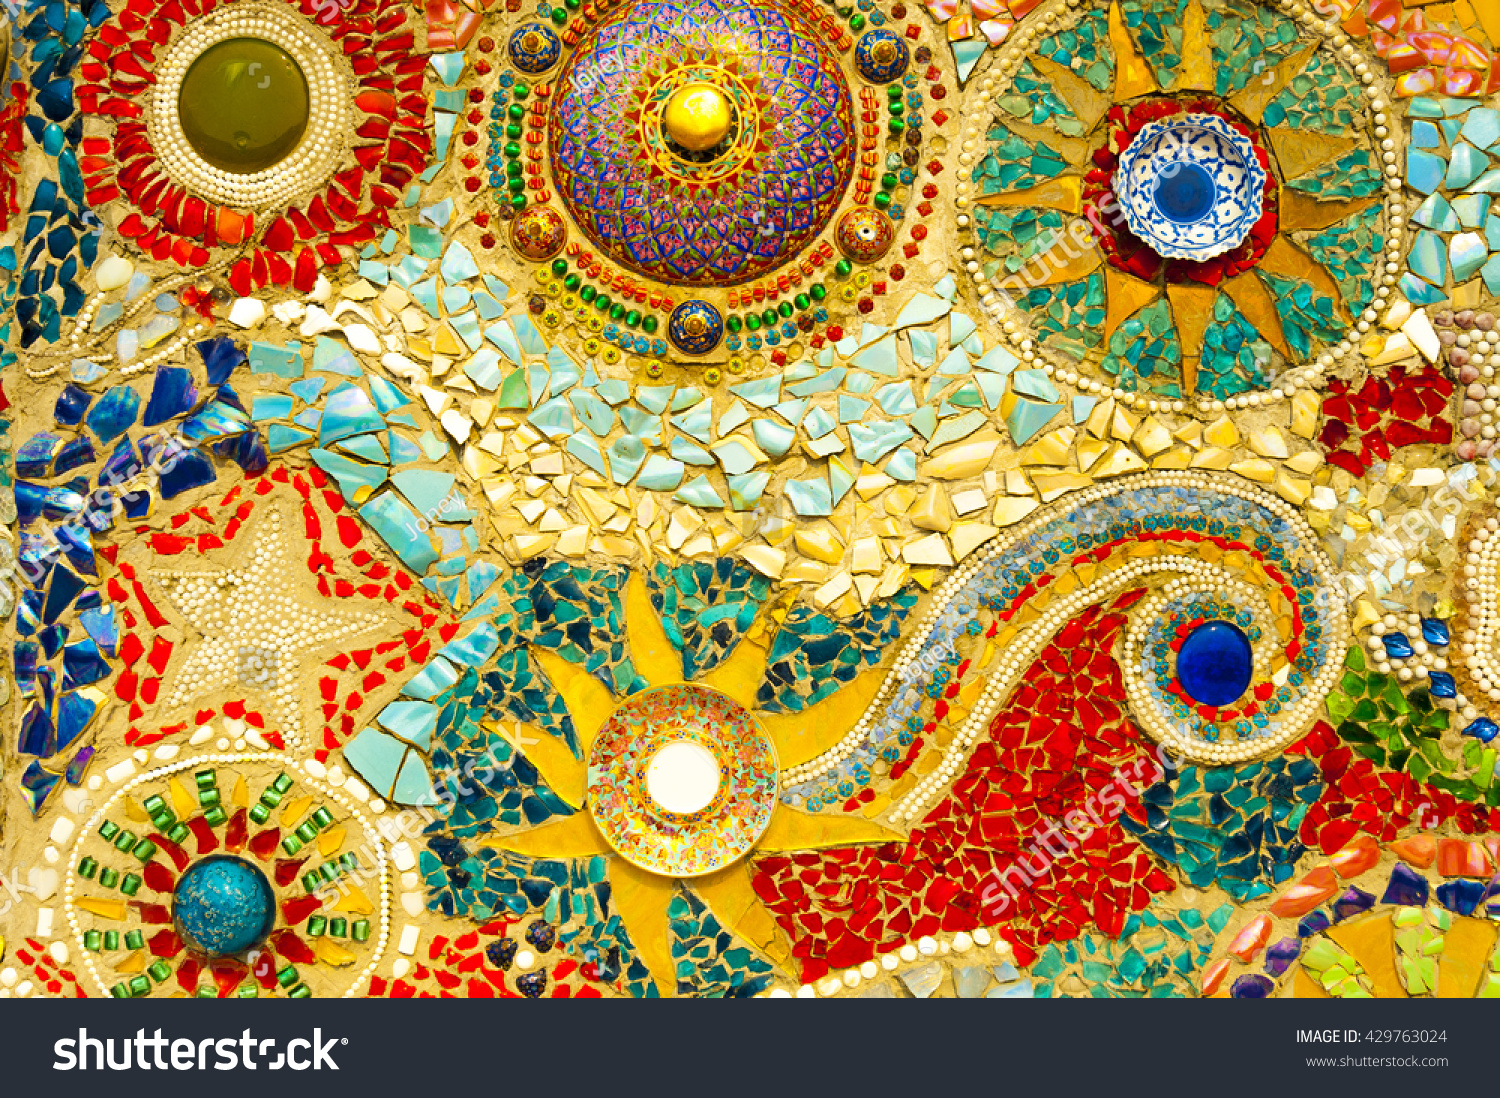 Funky Glass Mosaic Wall Art Illustration - The Wall Art Decorations ...